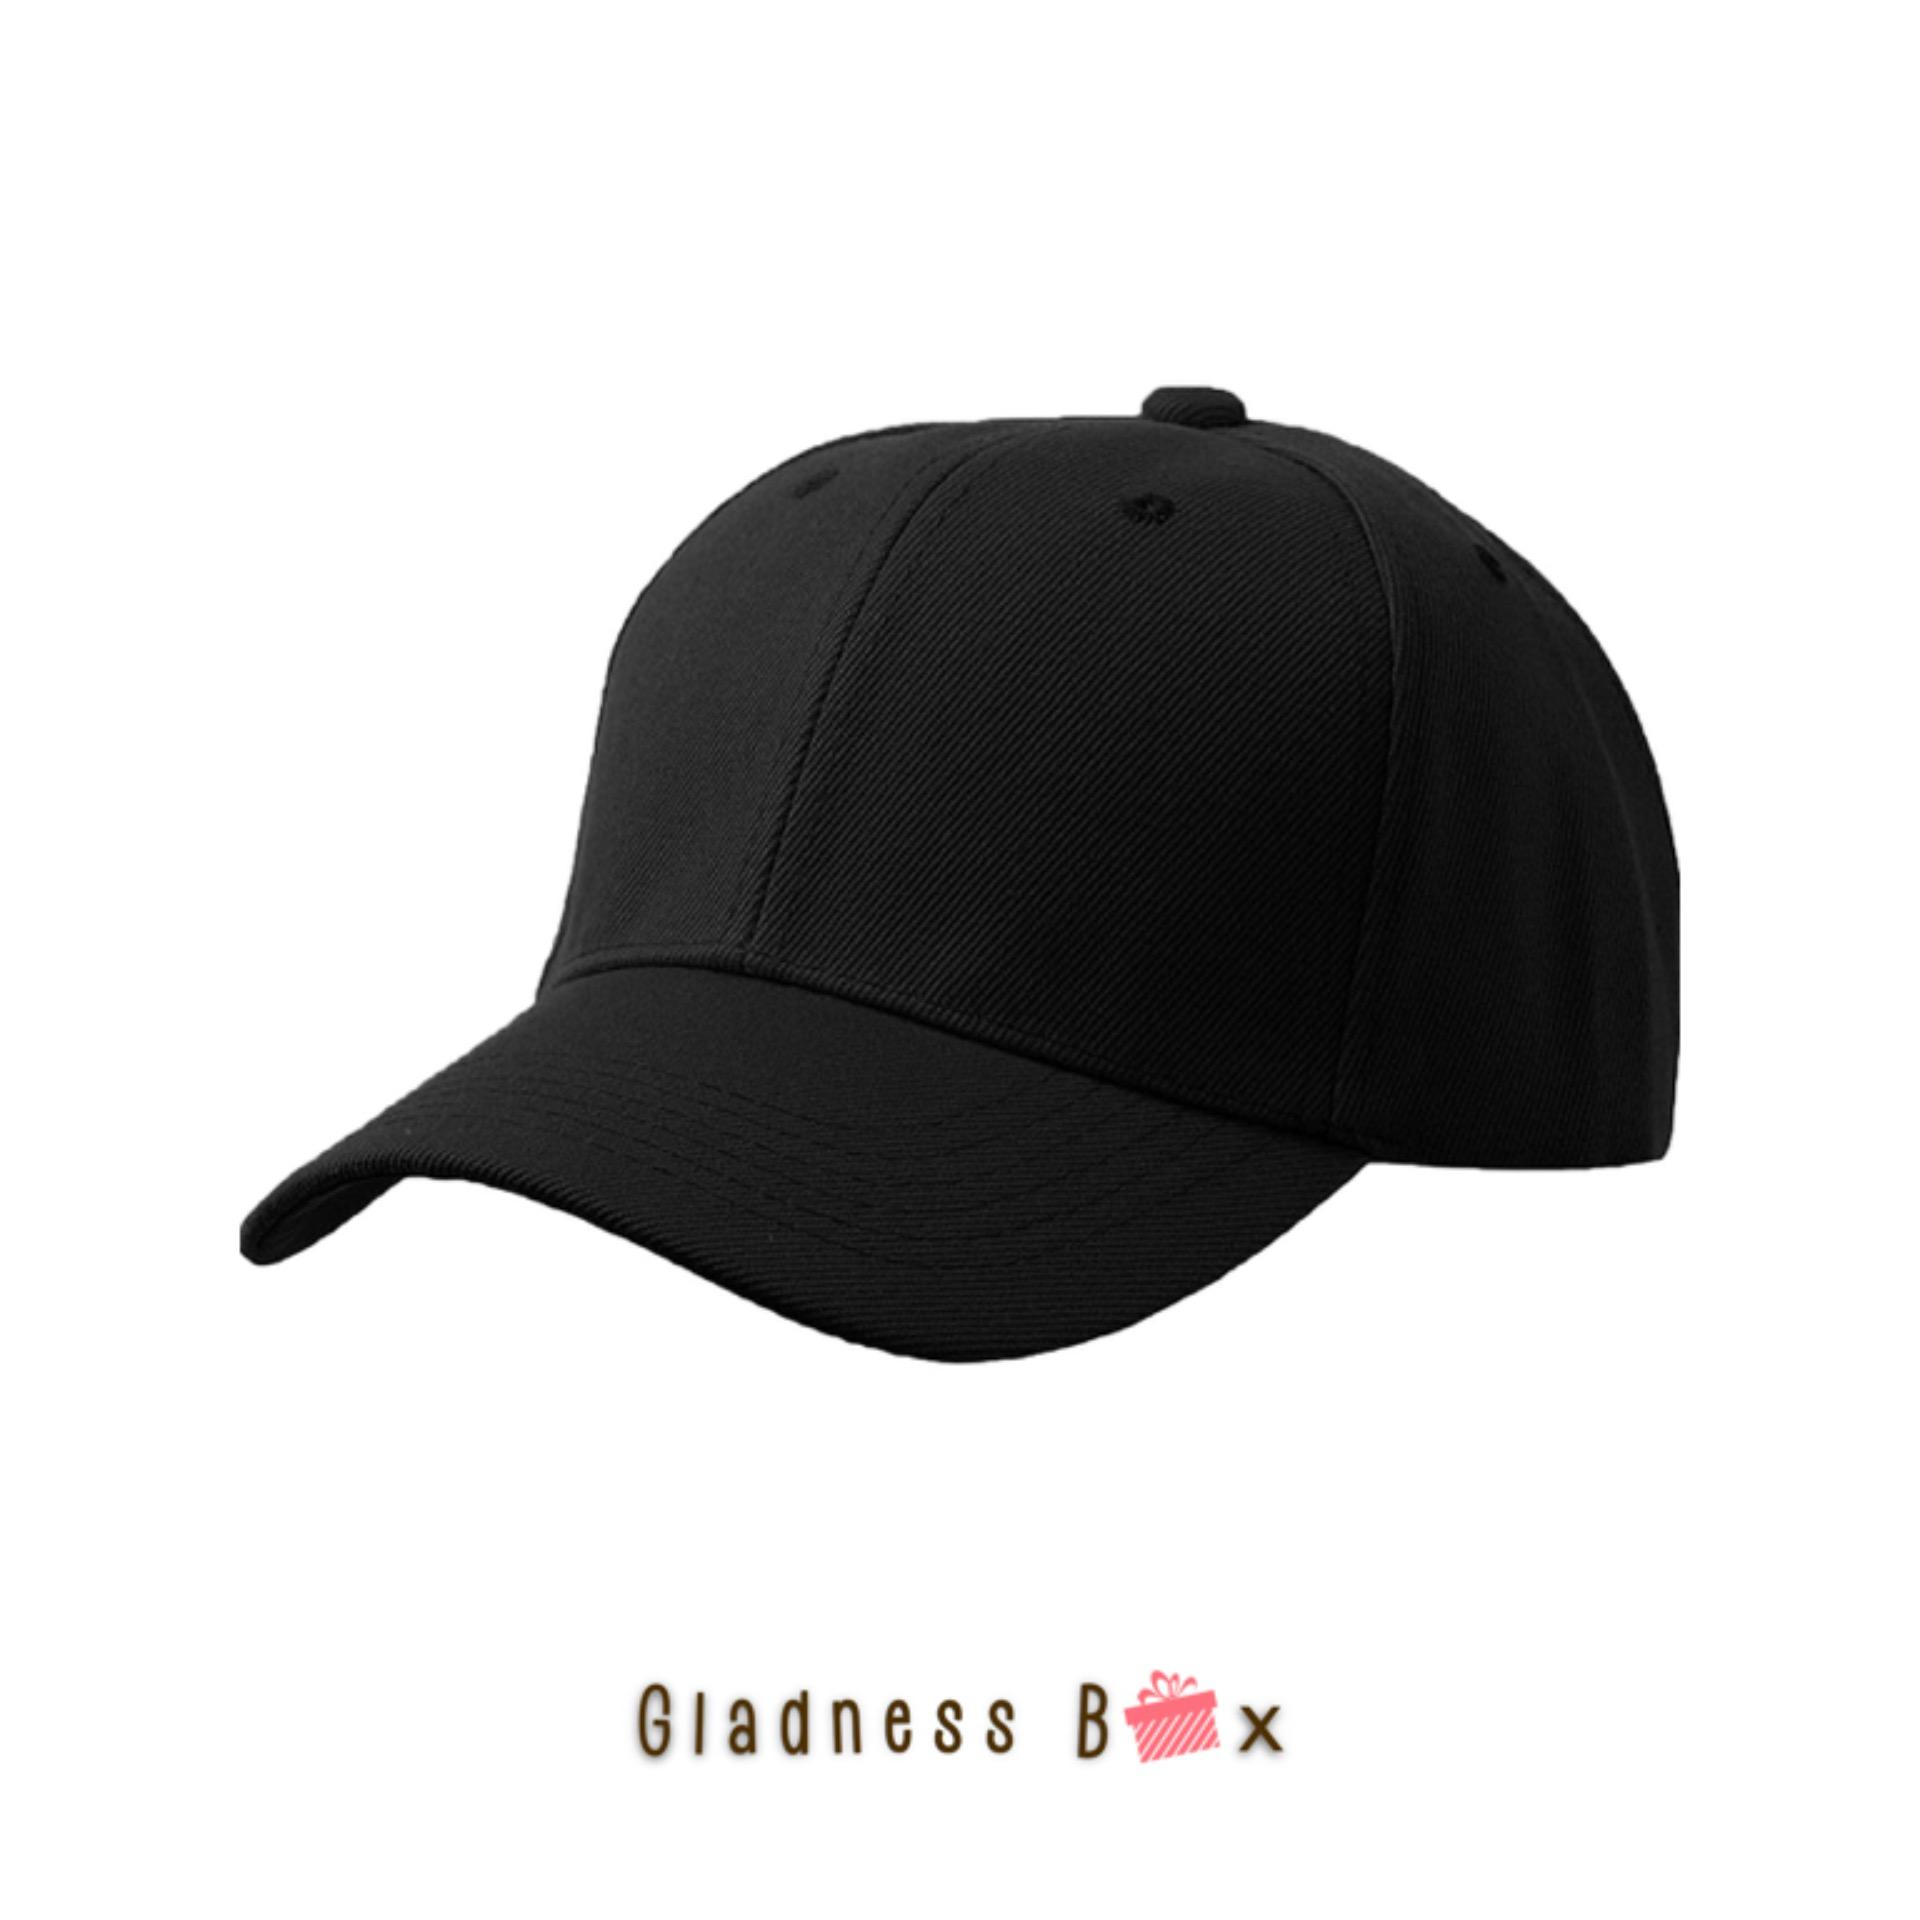 ae1dece0 Gladness Box High Quality Plain Baseball Cap for Men/Women/Unisex